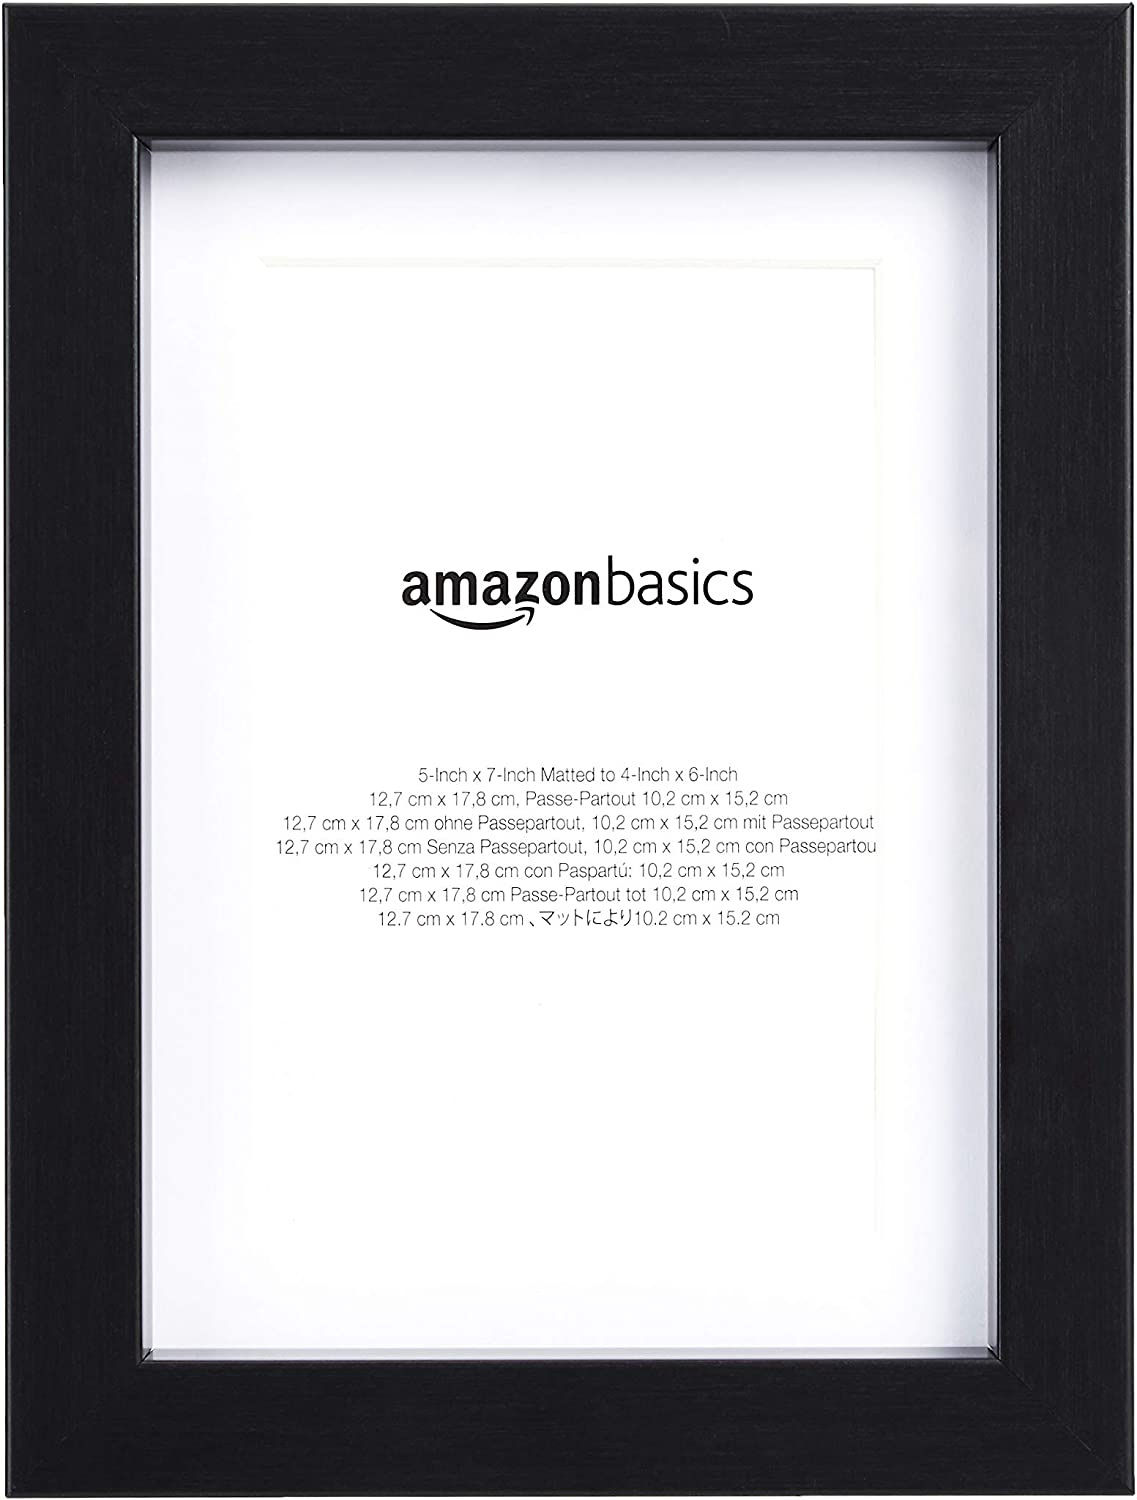 "AmazonBasics 5"" x 7"" Photo Picture Frame or 4"" x 6"" with Mat - Black, 2-Pack"